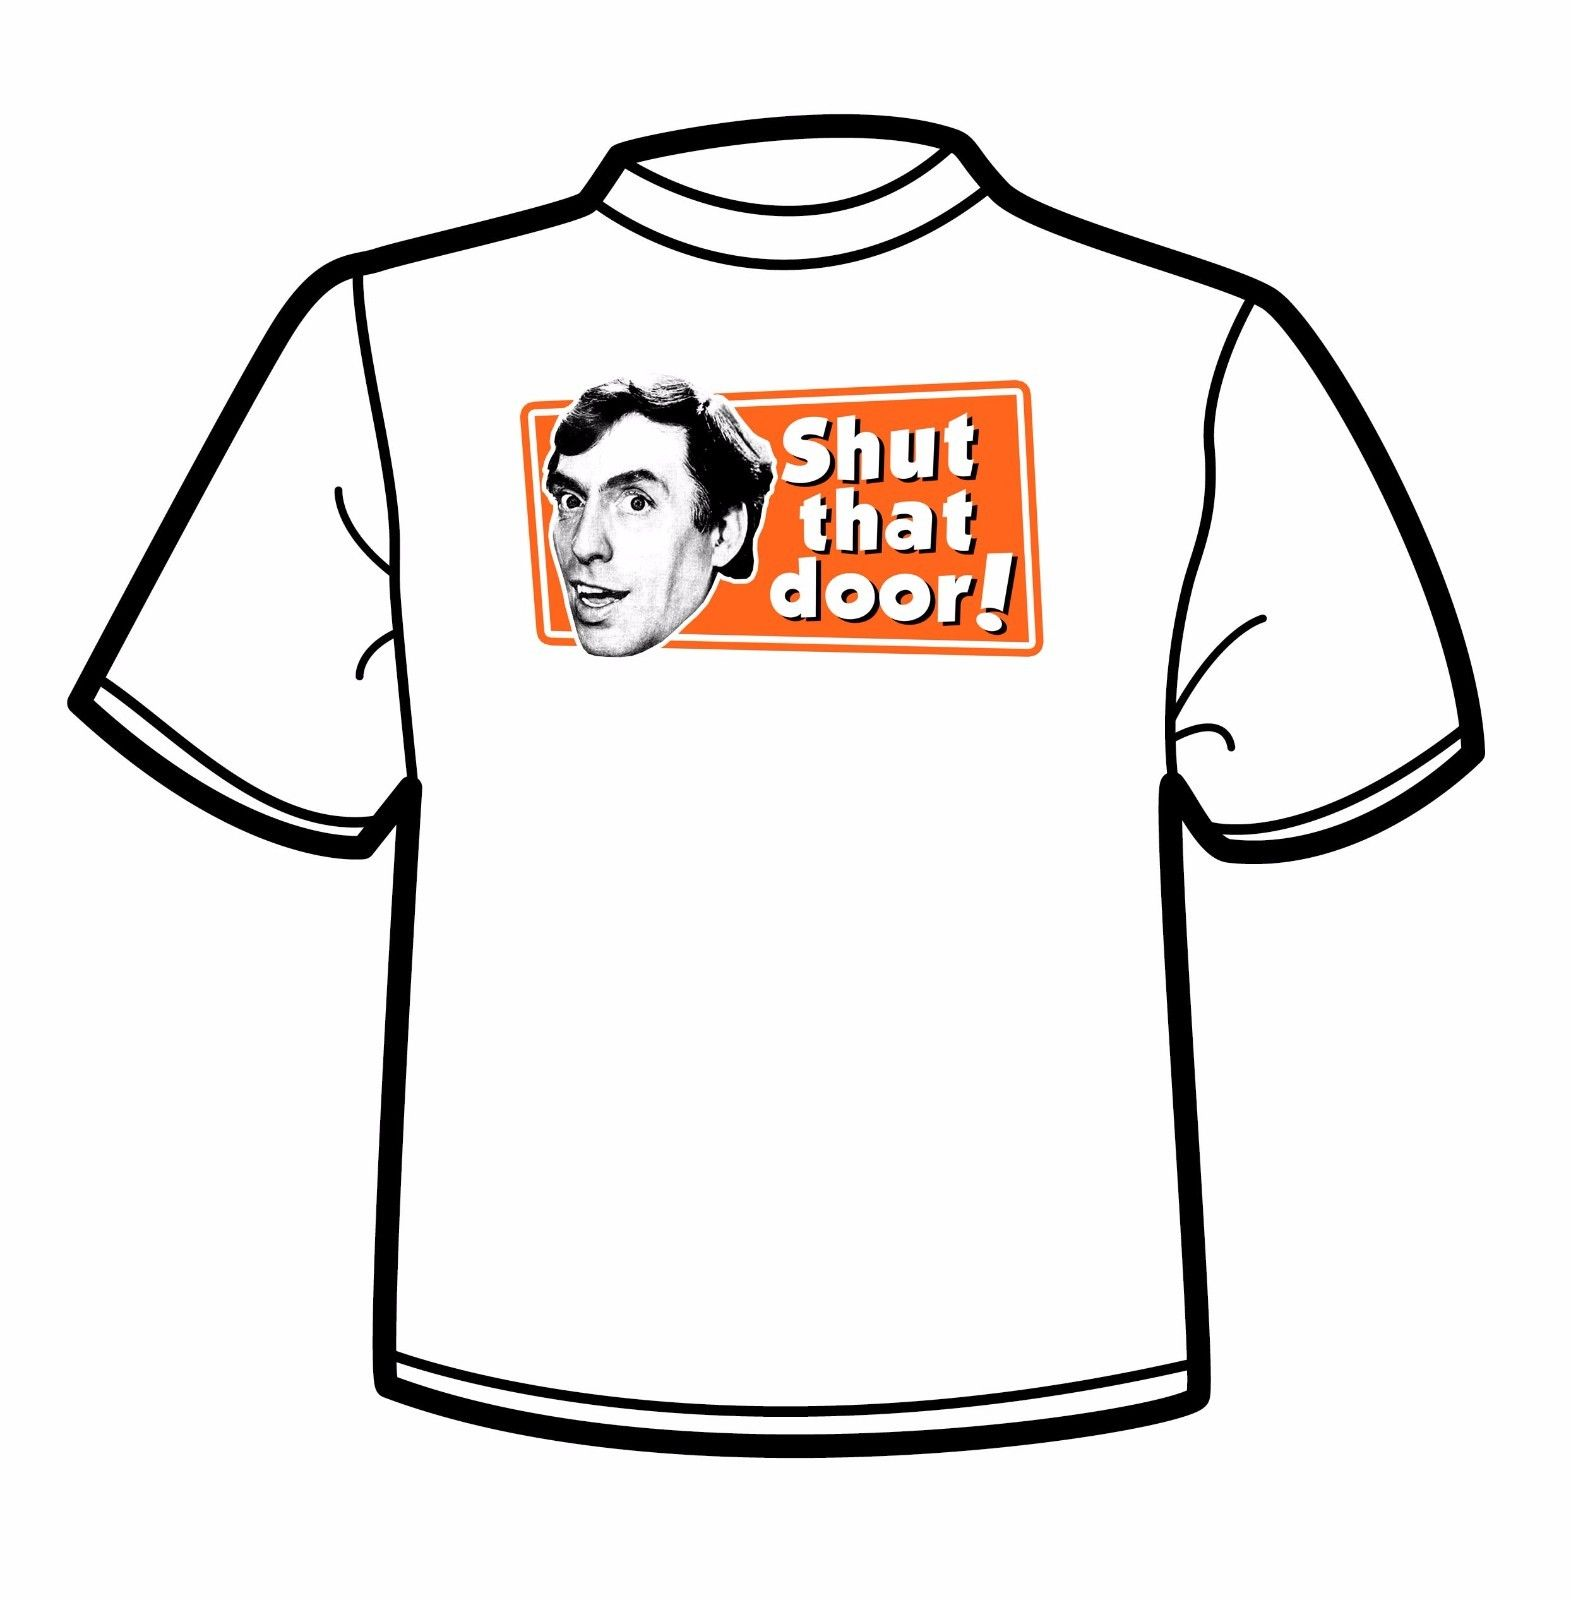 Larry Grayson Catchphrase White T Shirt Shut That Door Generation Game Print T Shirt Mens Short Sleeve Hot Tops Tshirt in T Shirts from Men 39 s Clothing